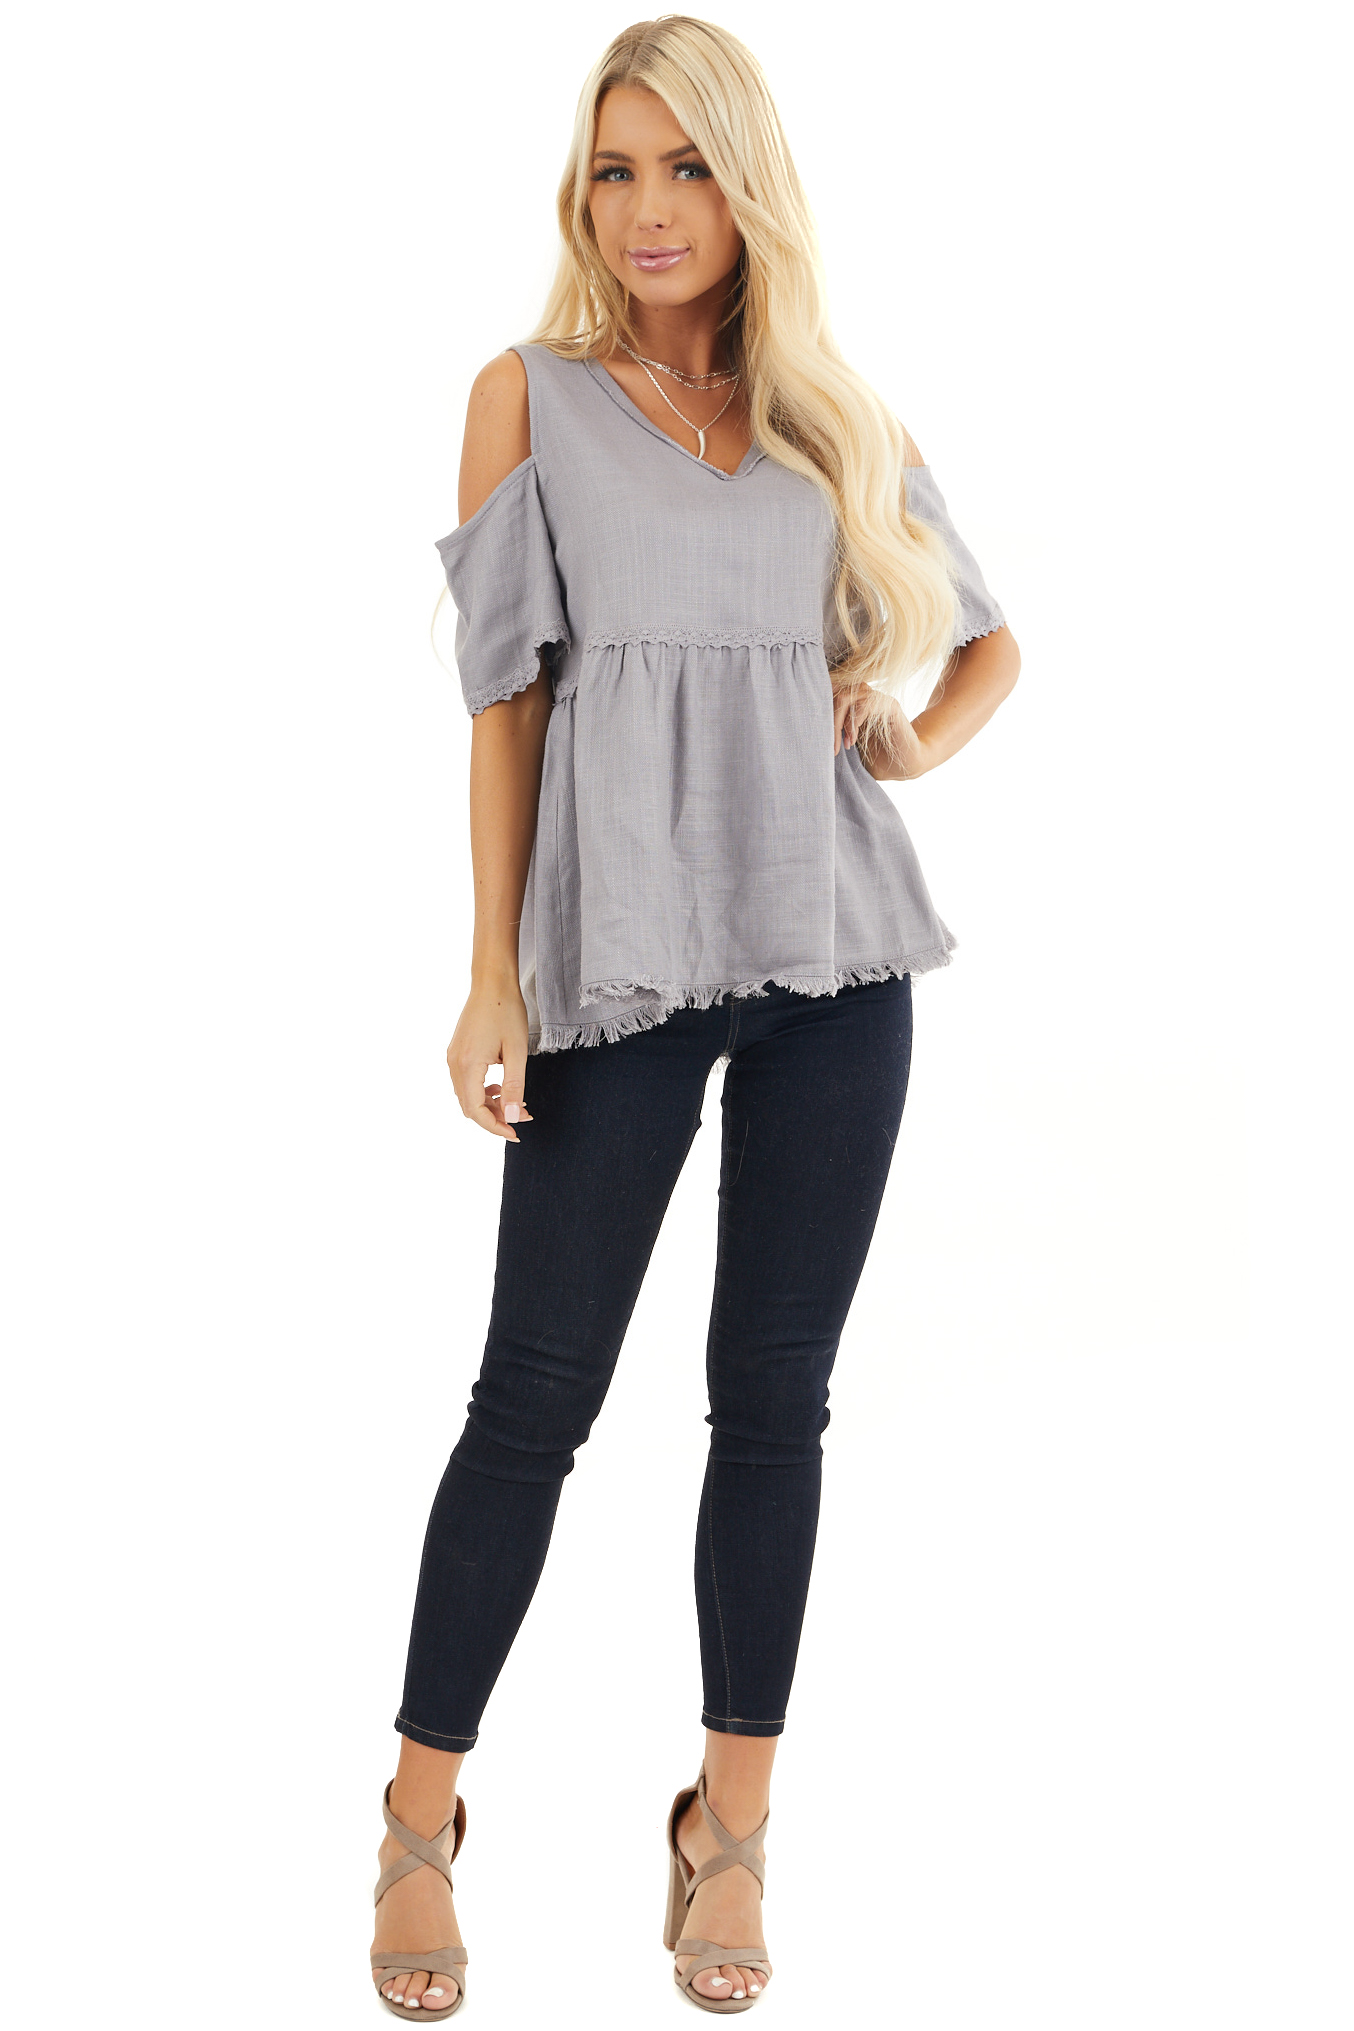 Dusty Lilac Two Toned Cold Shoulder Babydoll Top with Fringe front full body